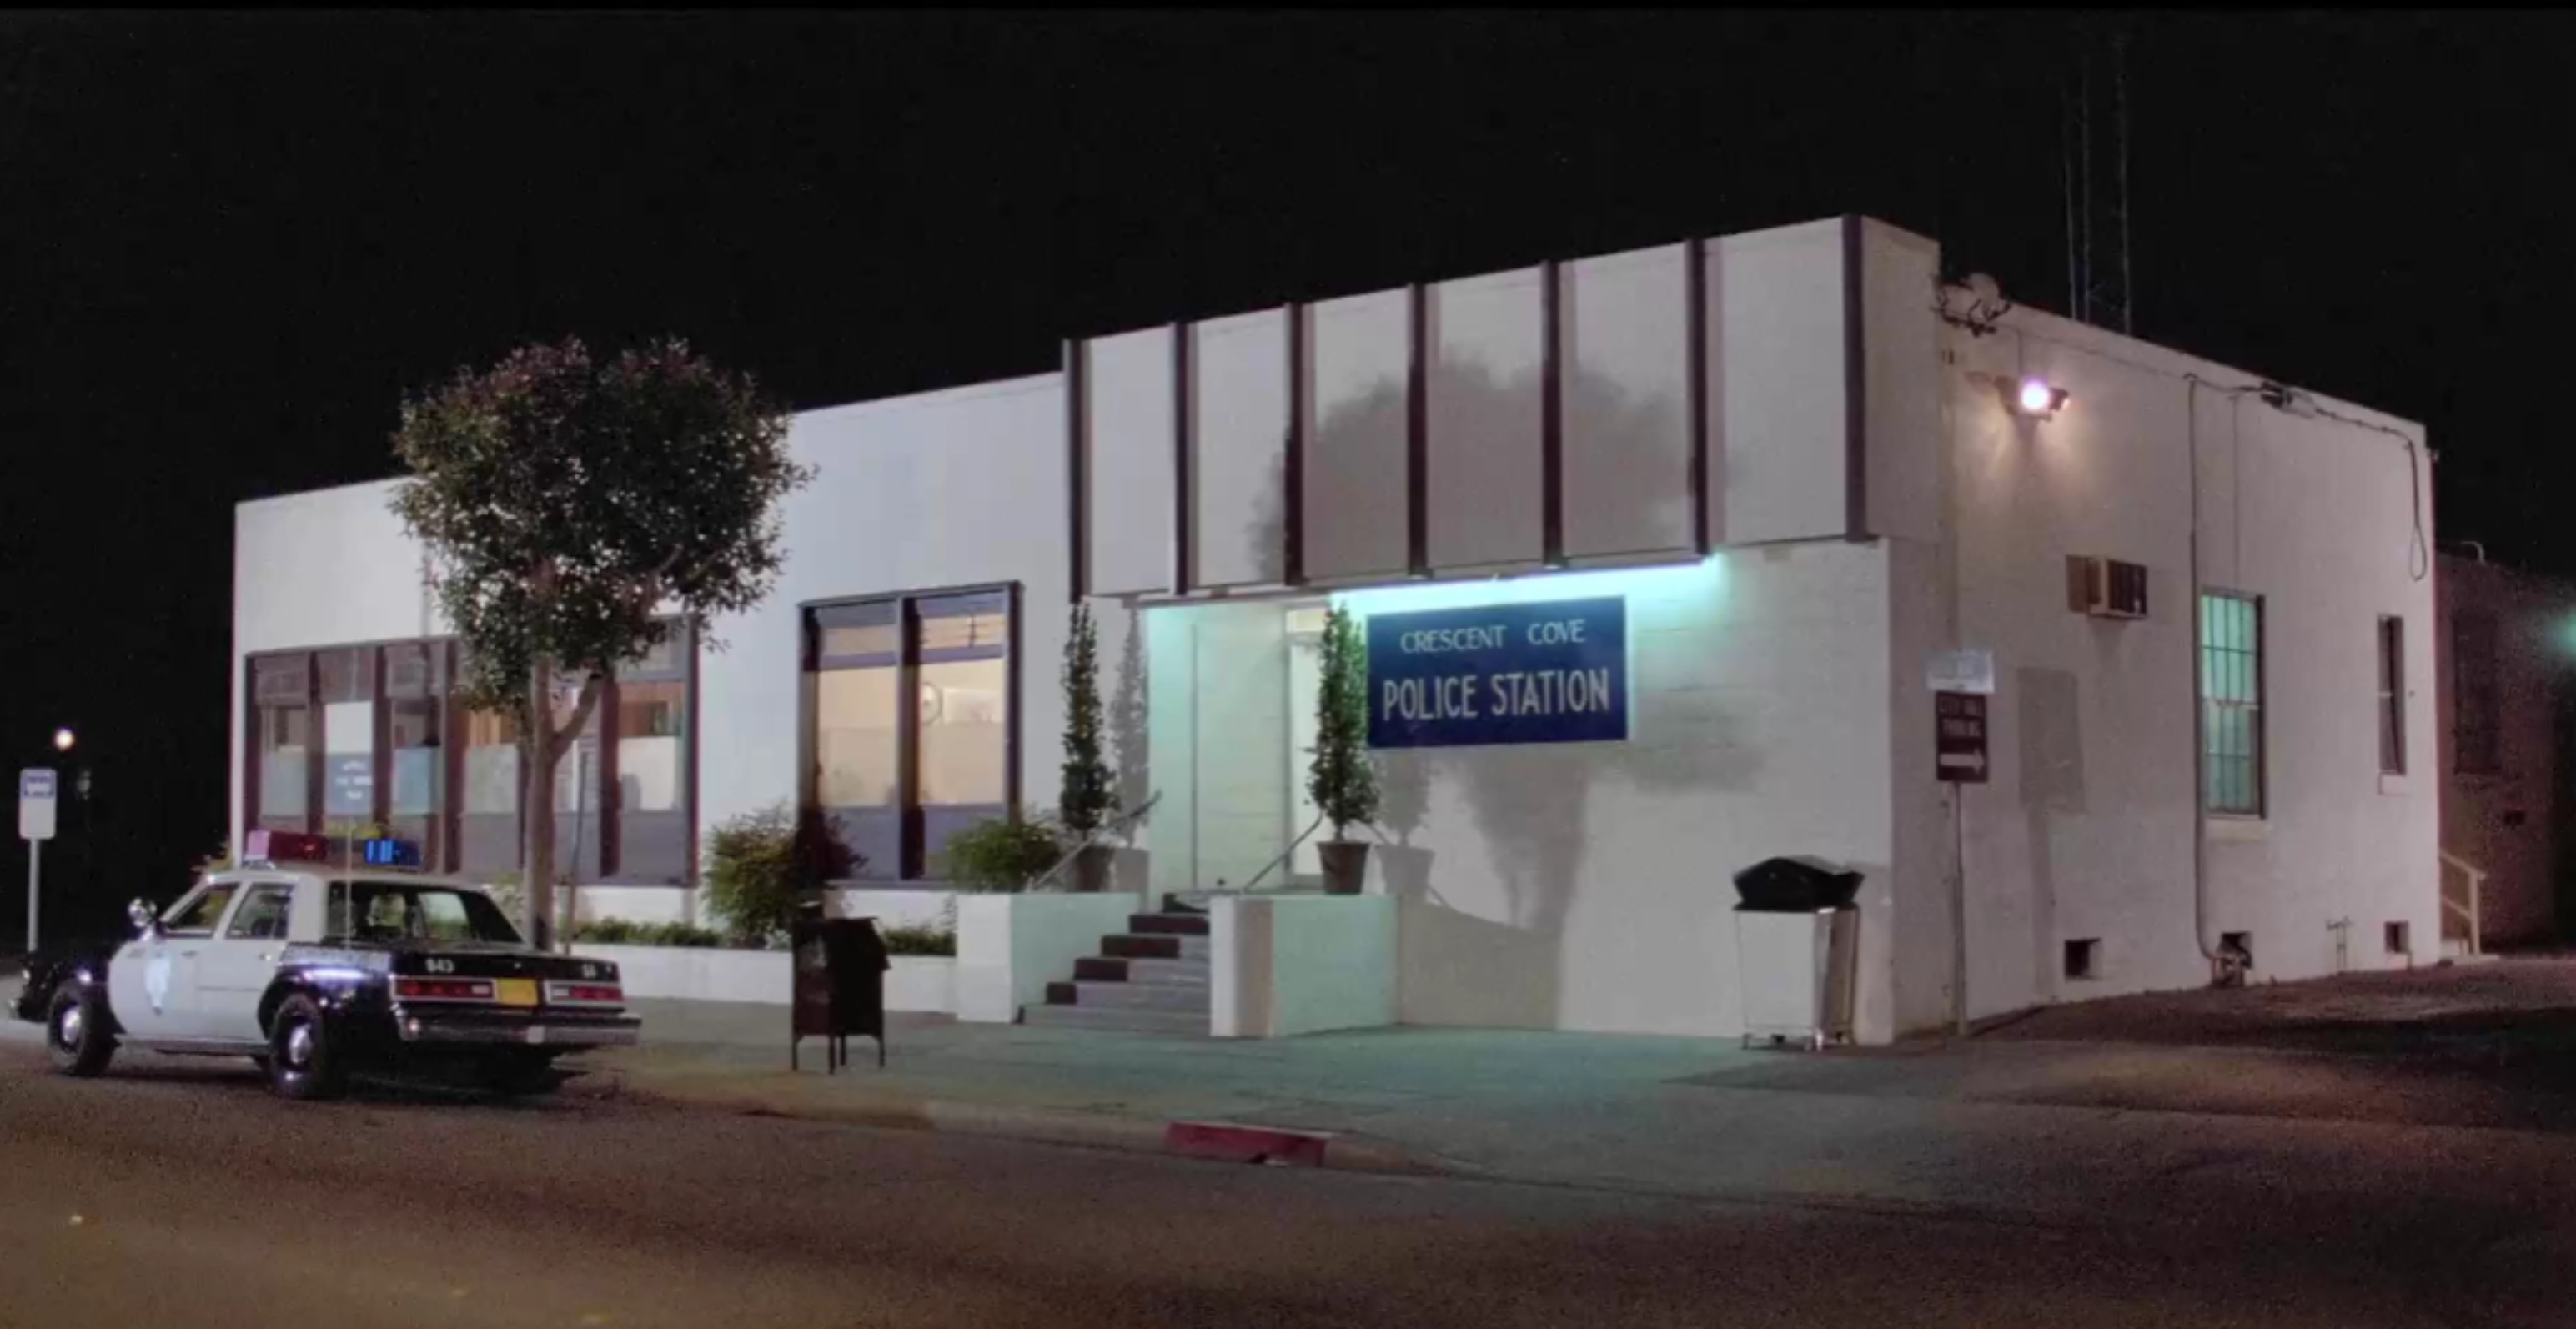 Crescent Cove Police Station